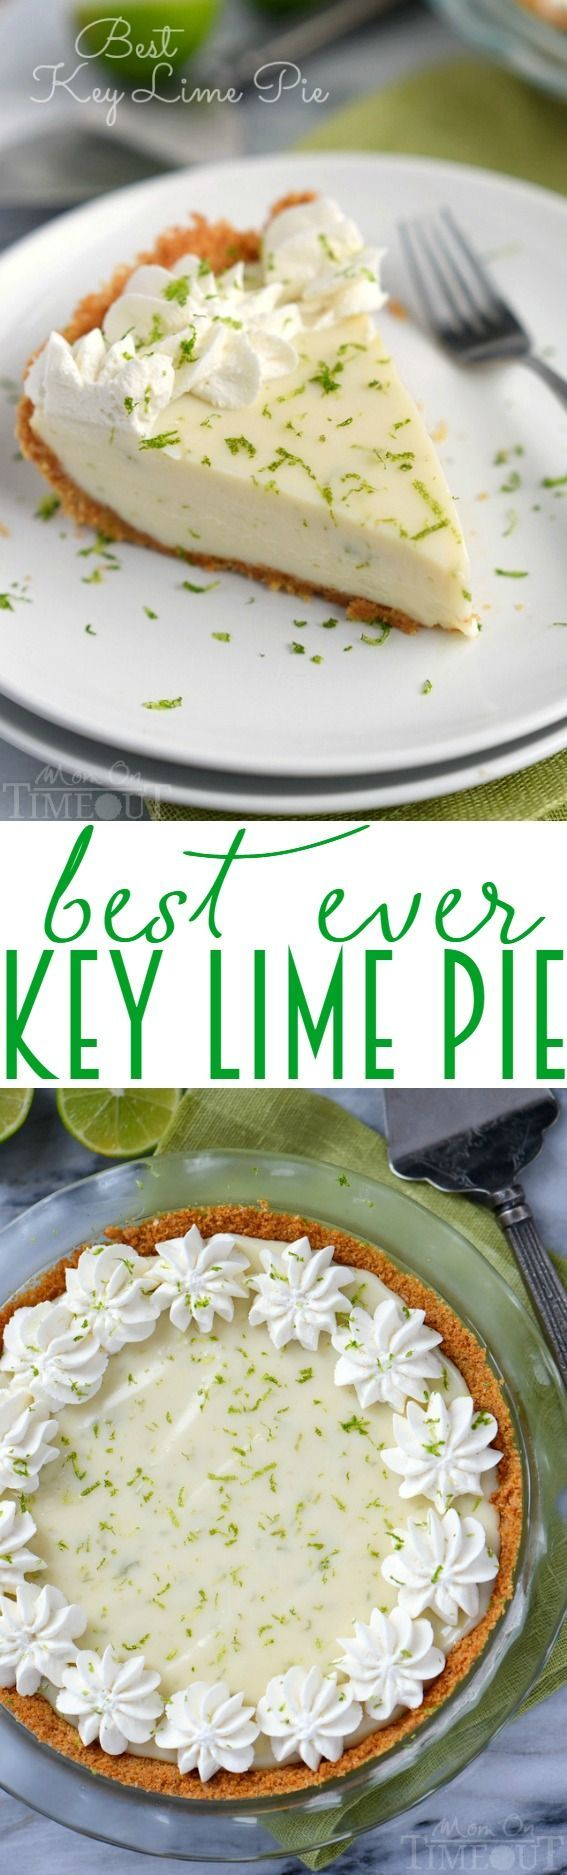 Best Key Lime Pie The Best Key Lime Pie recipe EVER! And so darn easy too! You won't be able to sto